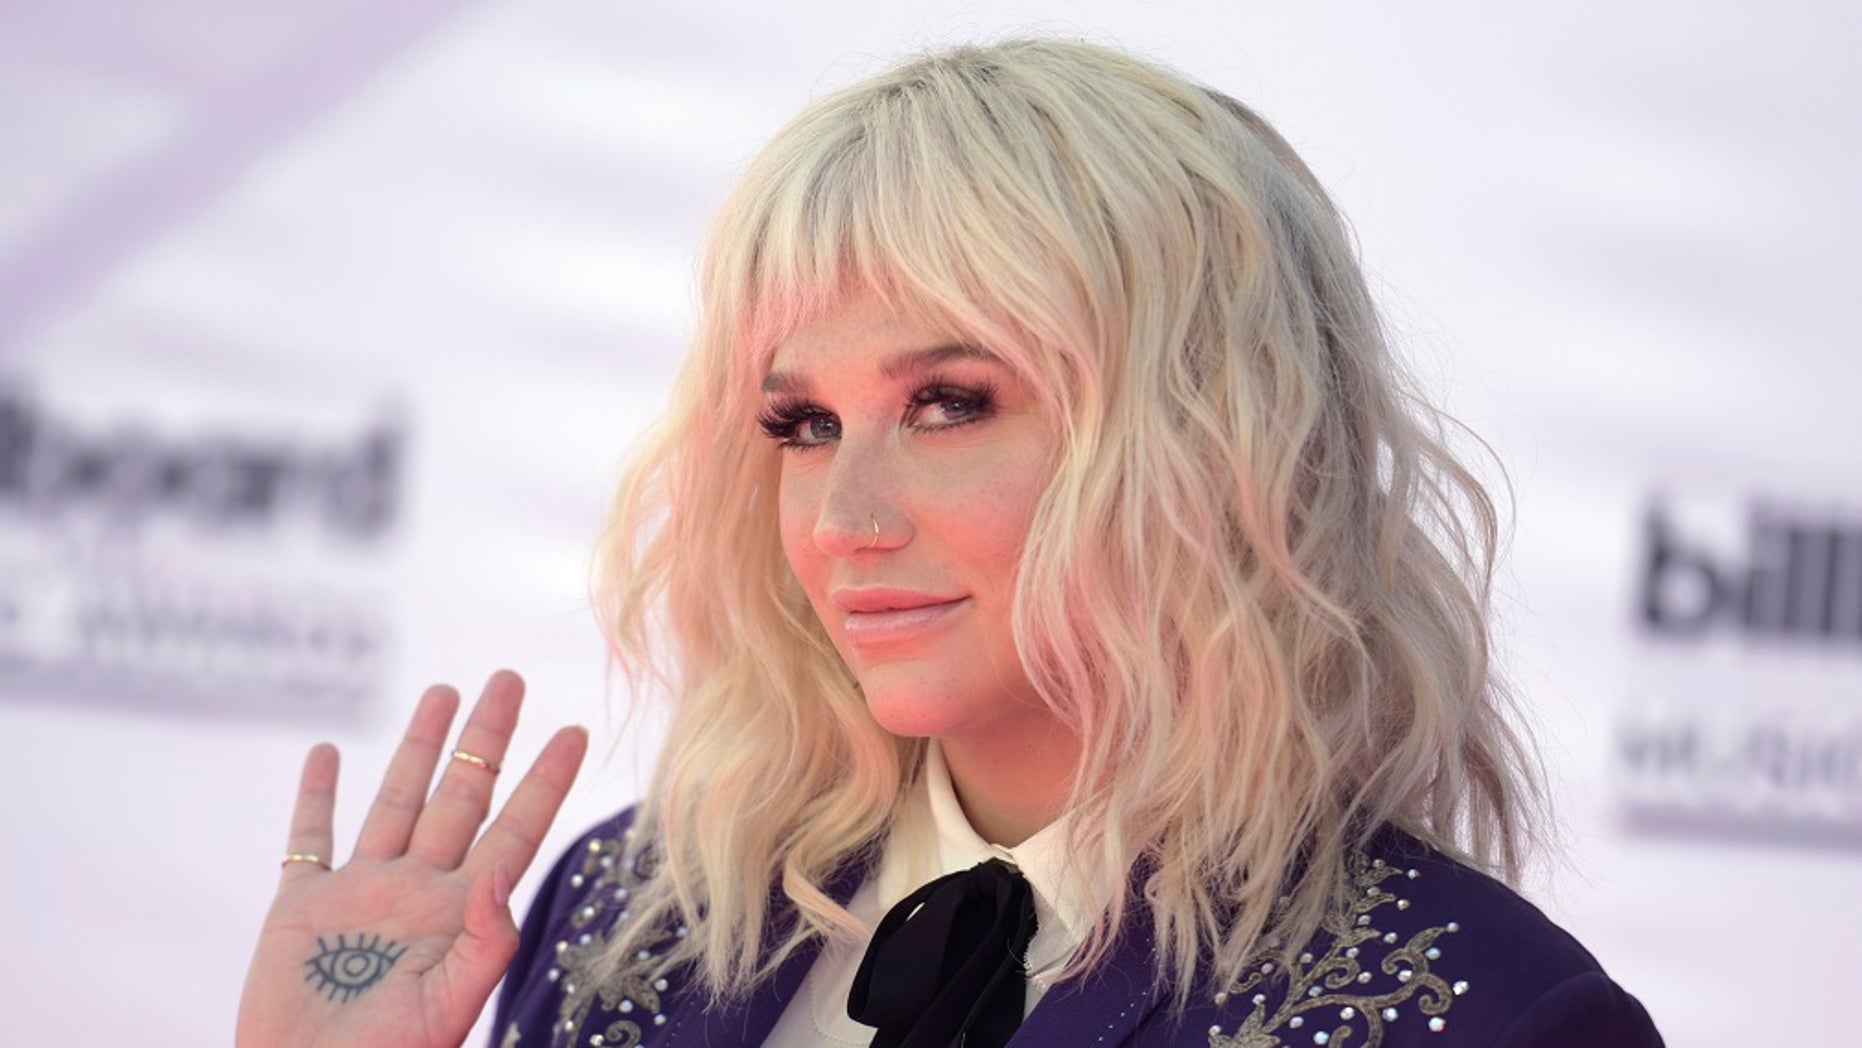 File photo: In this May 22, 2016, file photo, Kesha arrives at the Billboard Music Awards at the T-Mobile Arena in Las Vegas. (Photo by Richard Shotwell/Invision/AP)